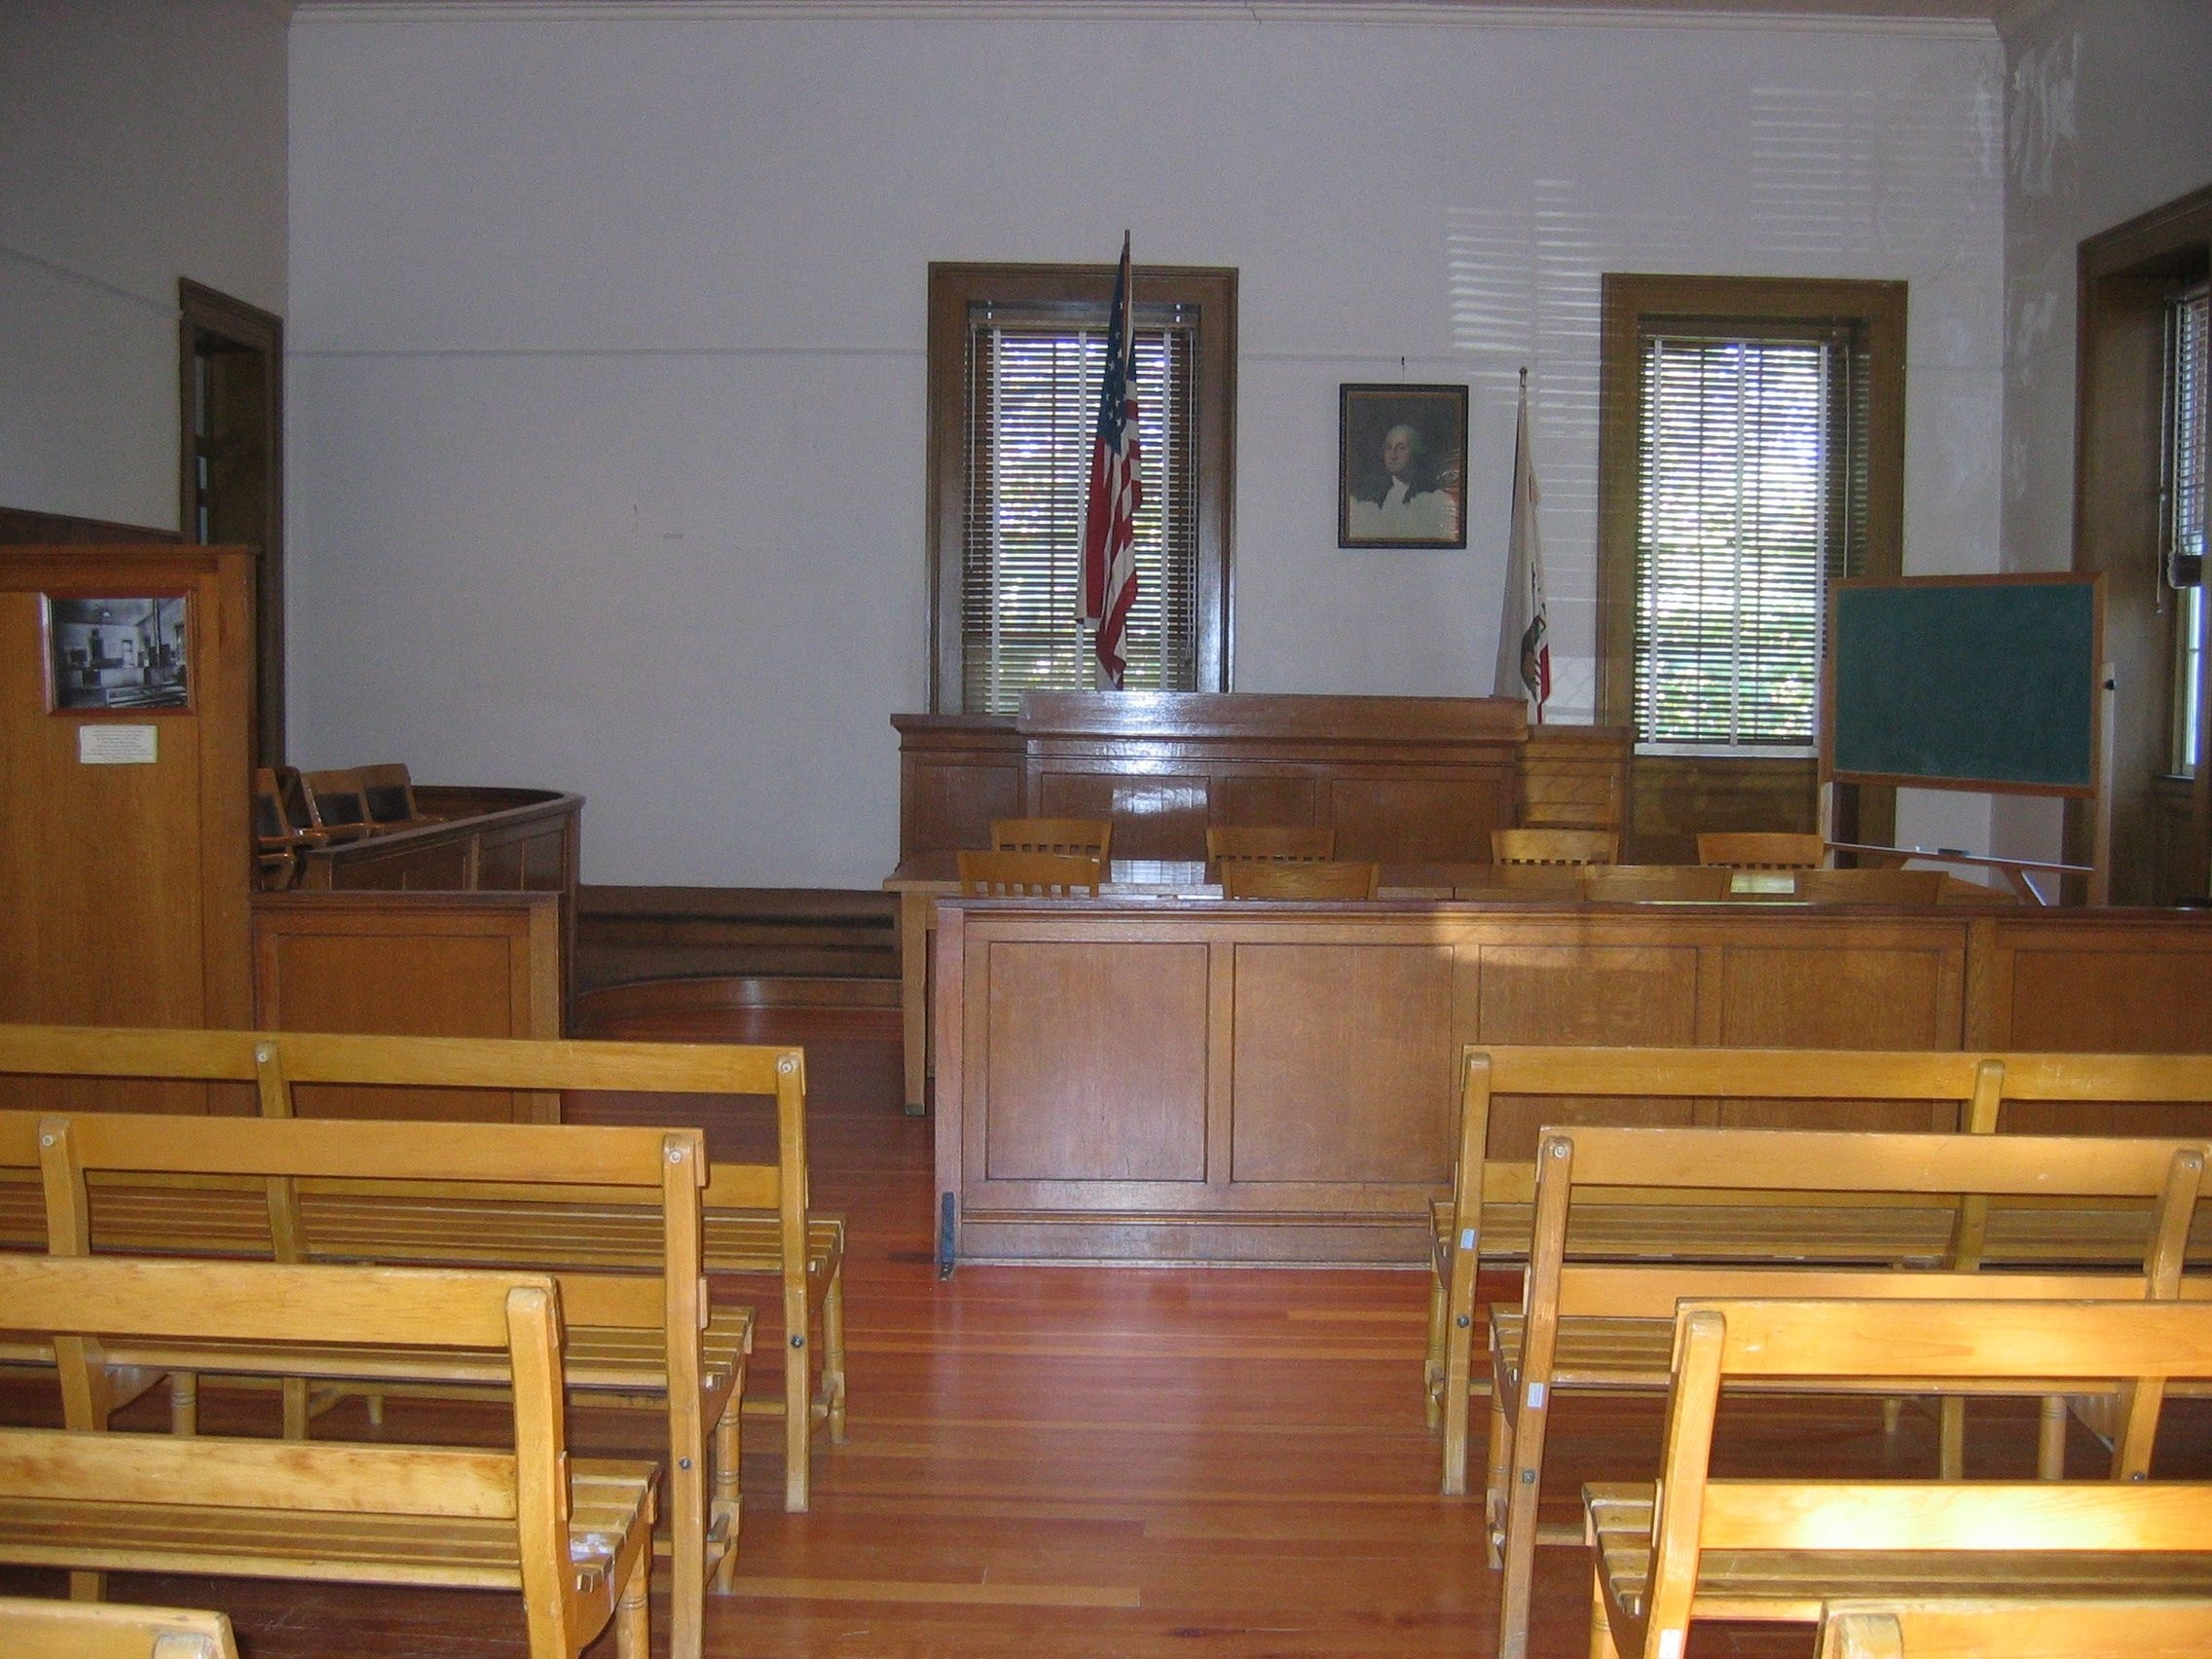 Court Room Where Black Bart was Tried, Convicted and Sentenced